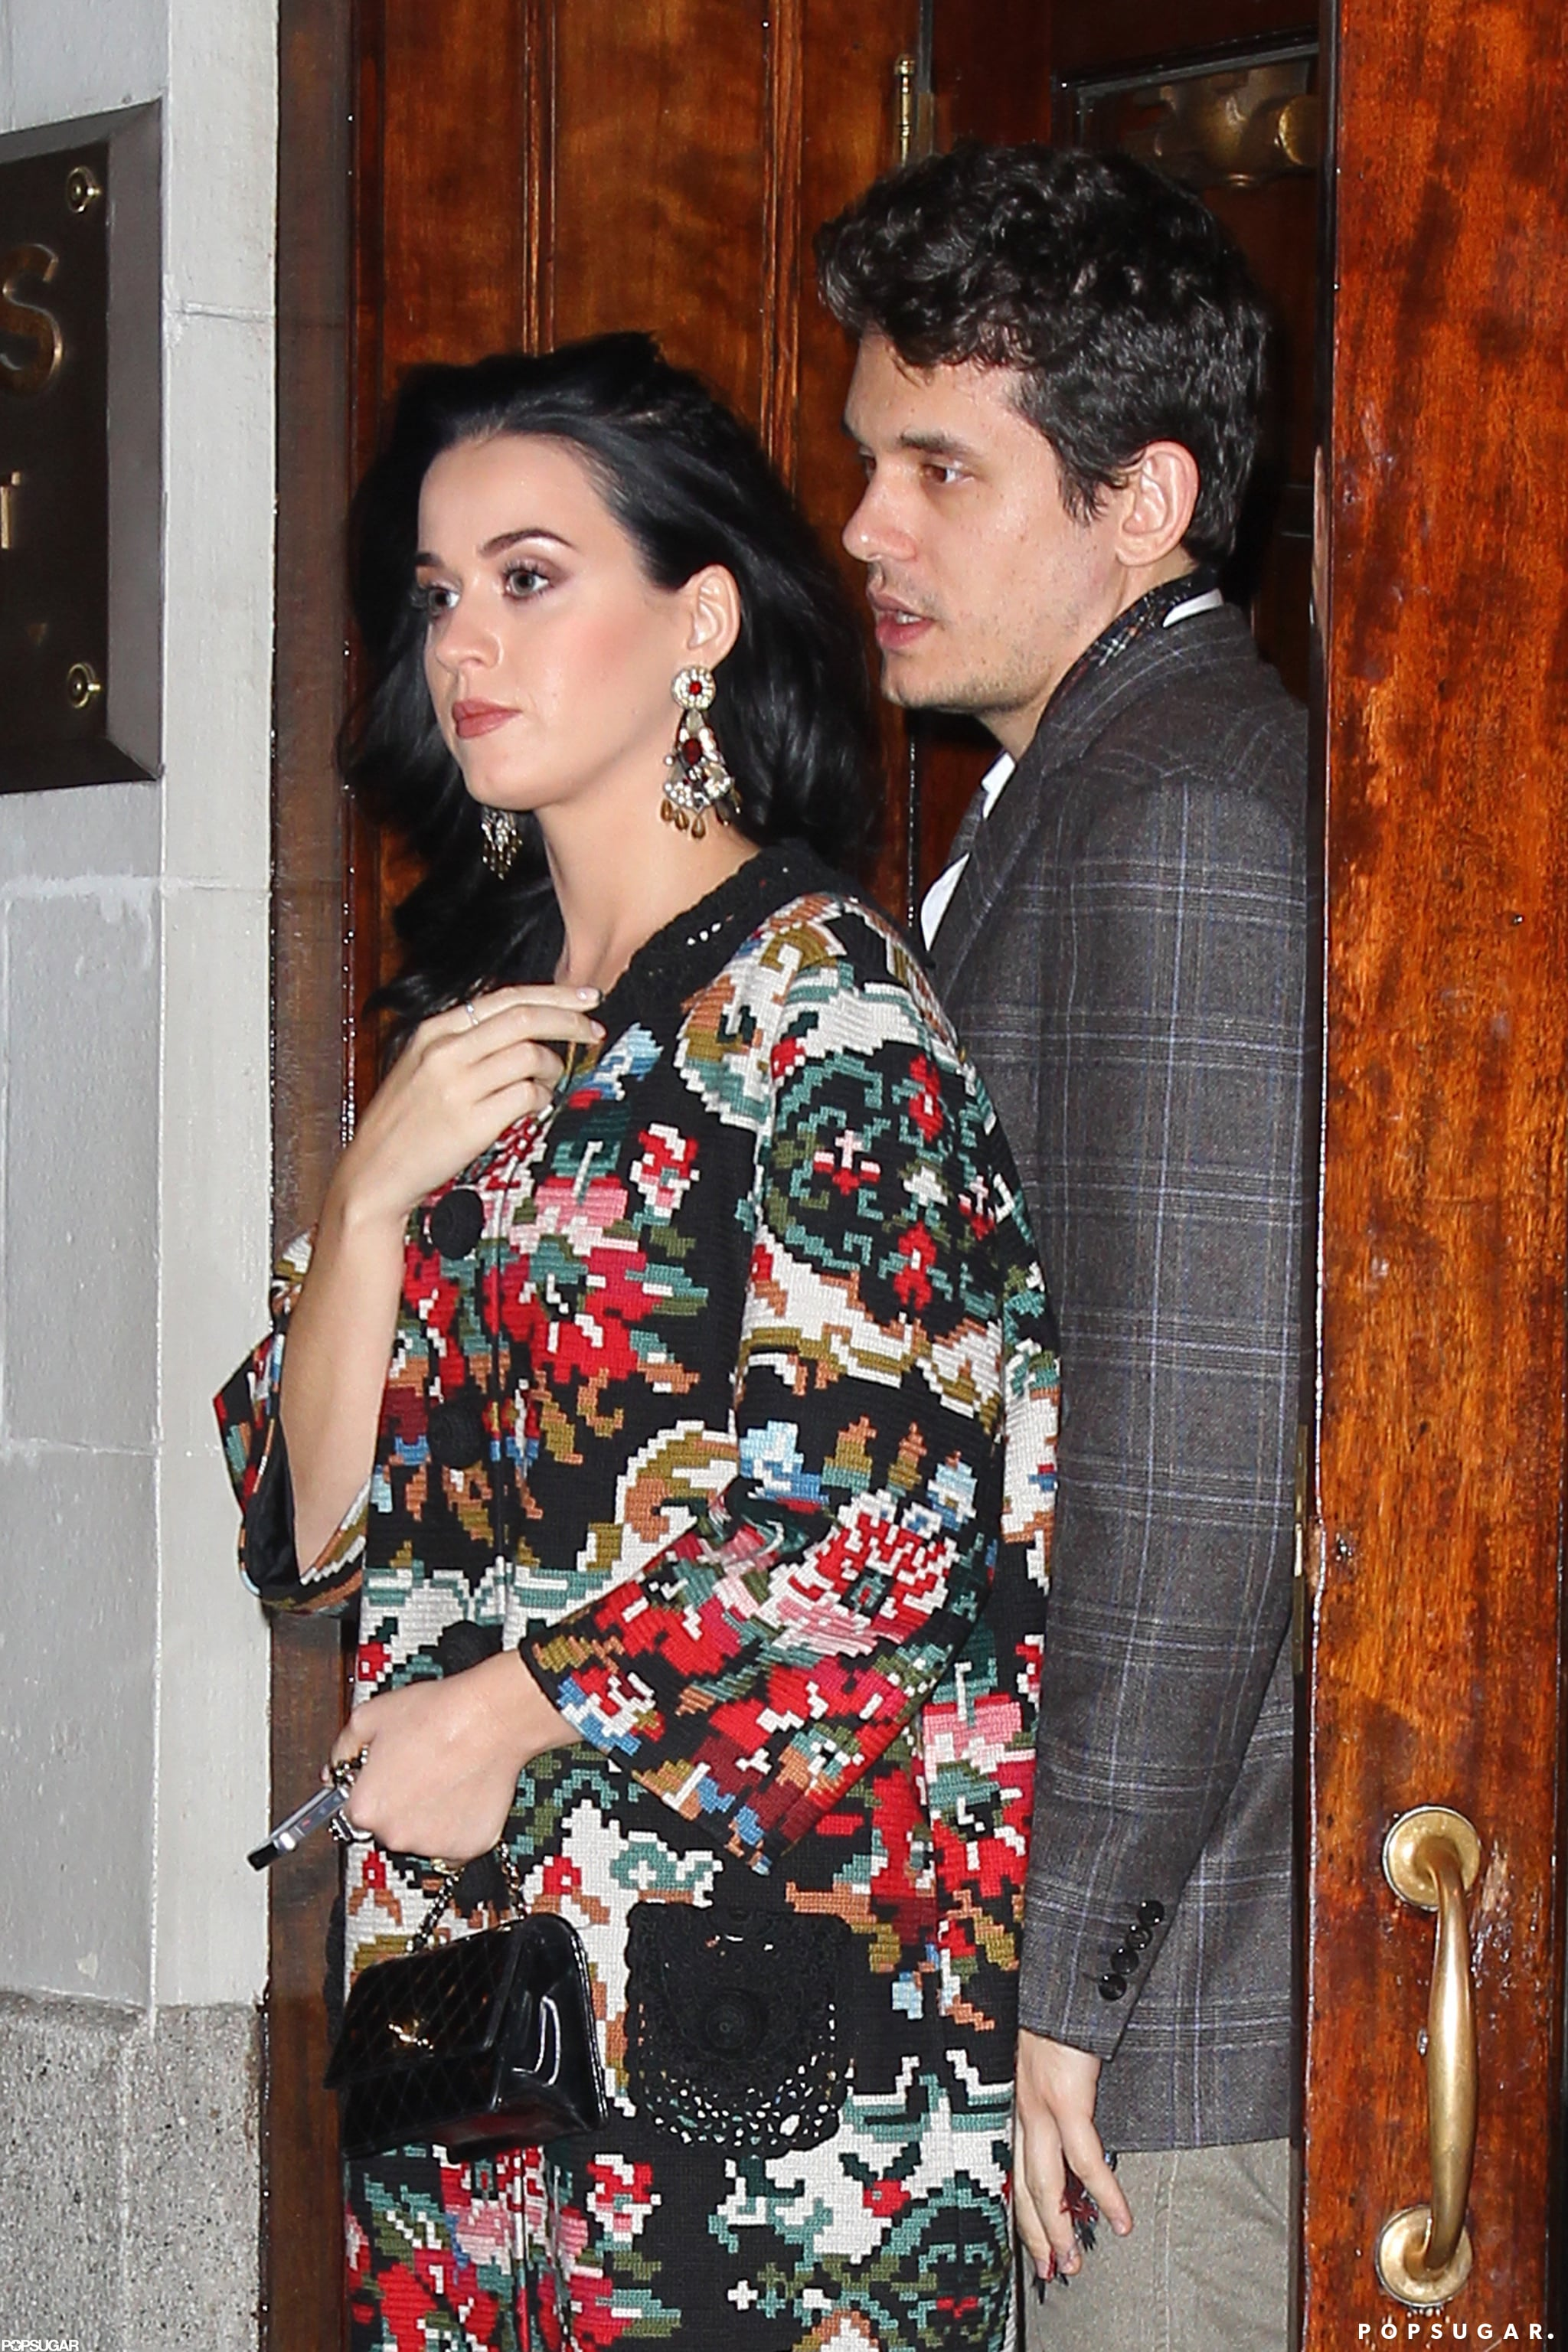 Katy Perry and John Mayer enjoyed dinner with his father.